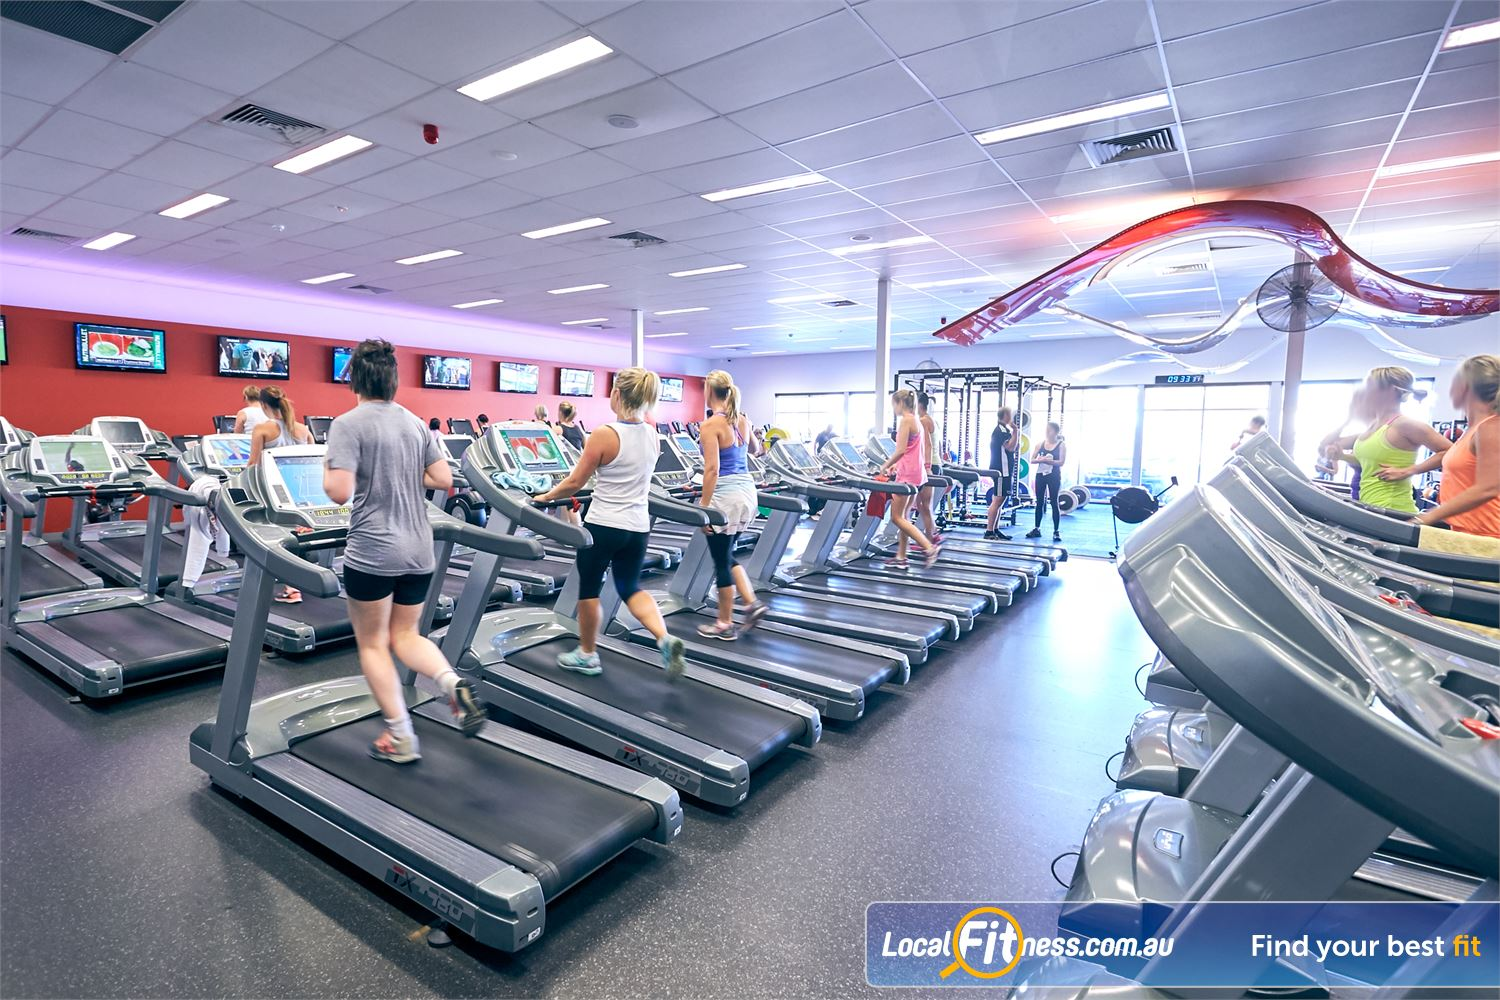 Goodlife Health Clubs Cross Roads Near Hawthorn Train when it suits you with 24/7 Cross Roads gym access.